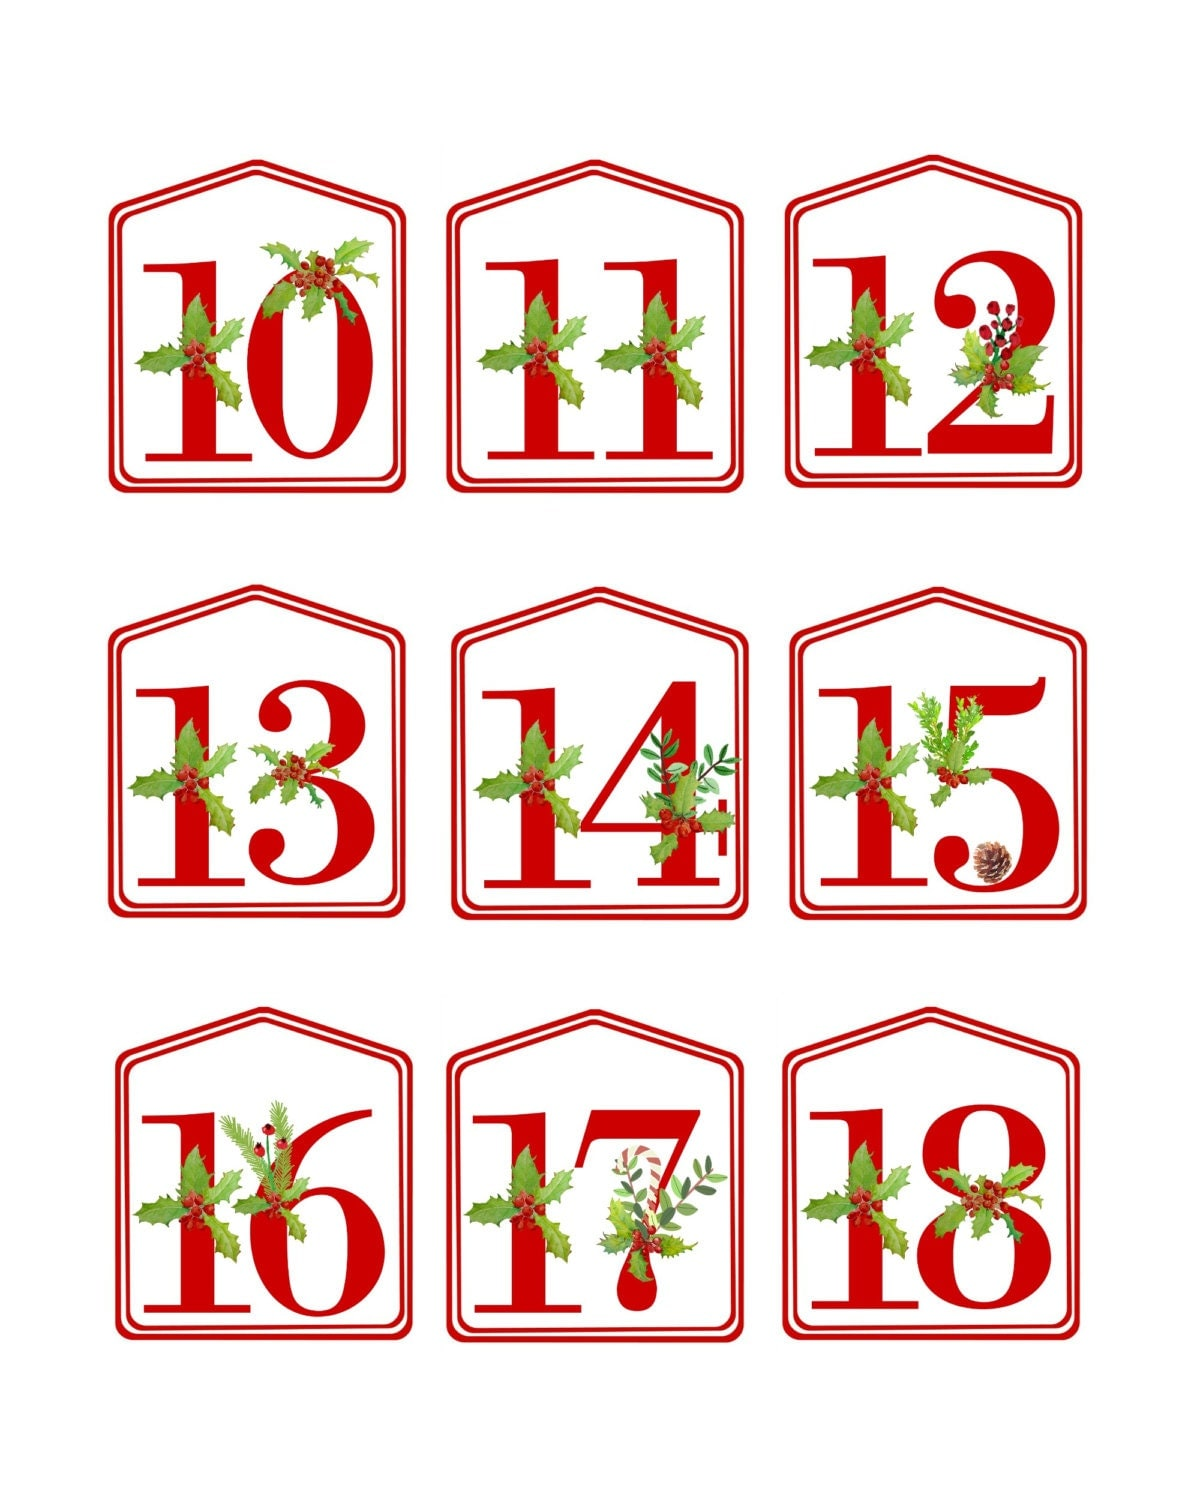 It's just an image of Transformative Printable Christmas Numbers